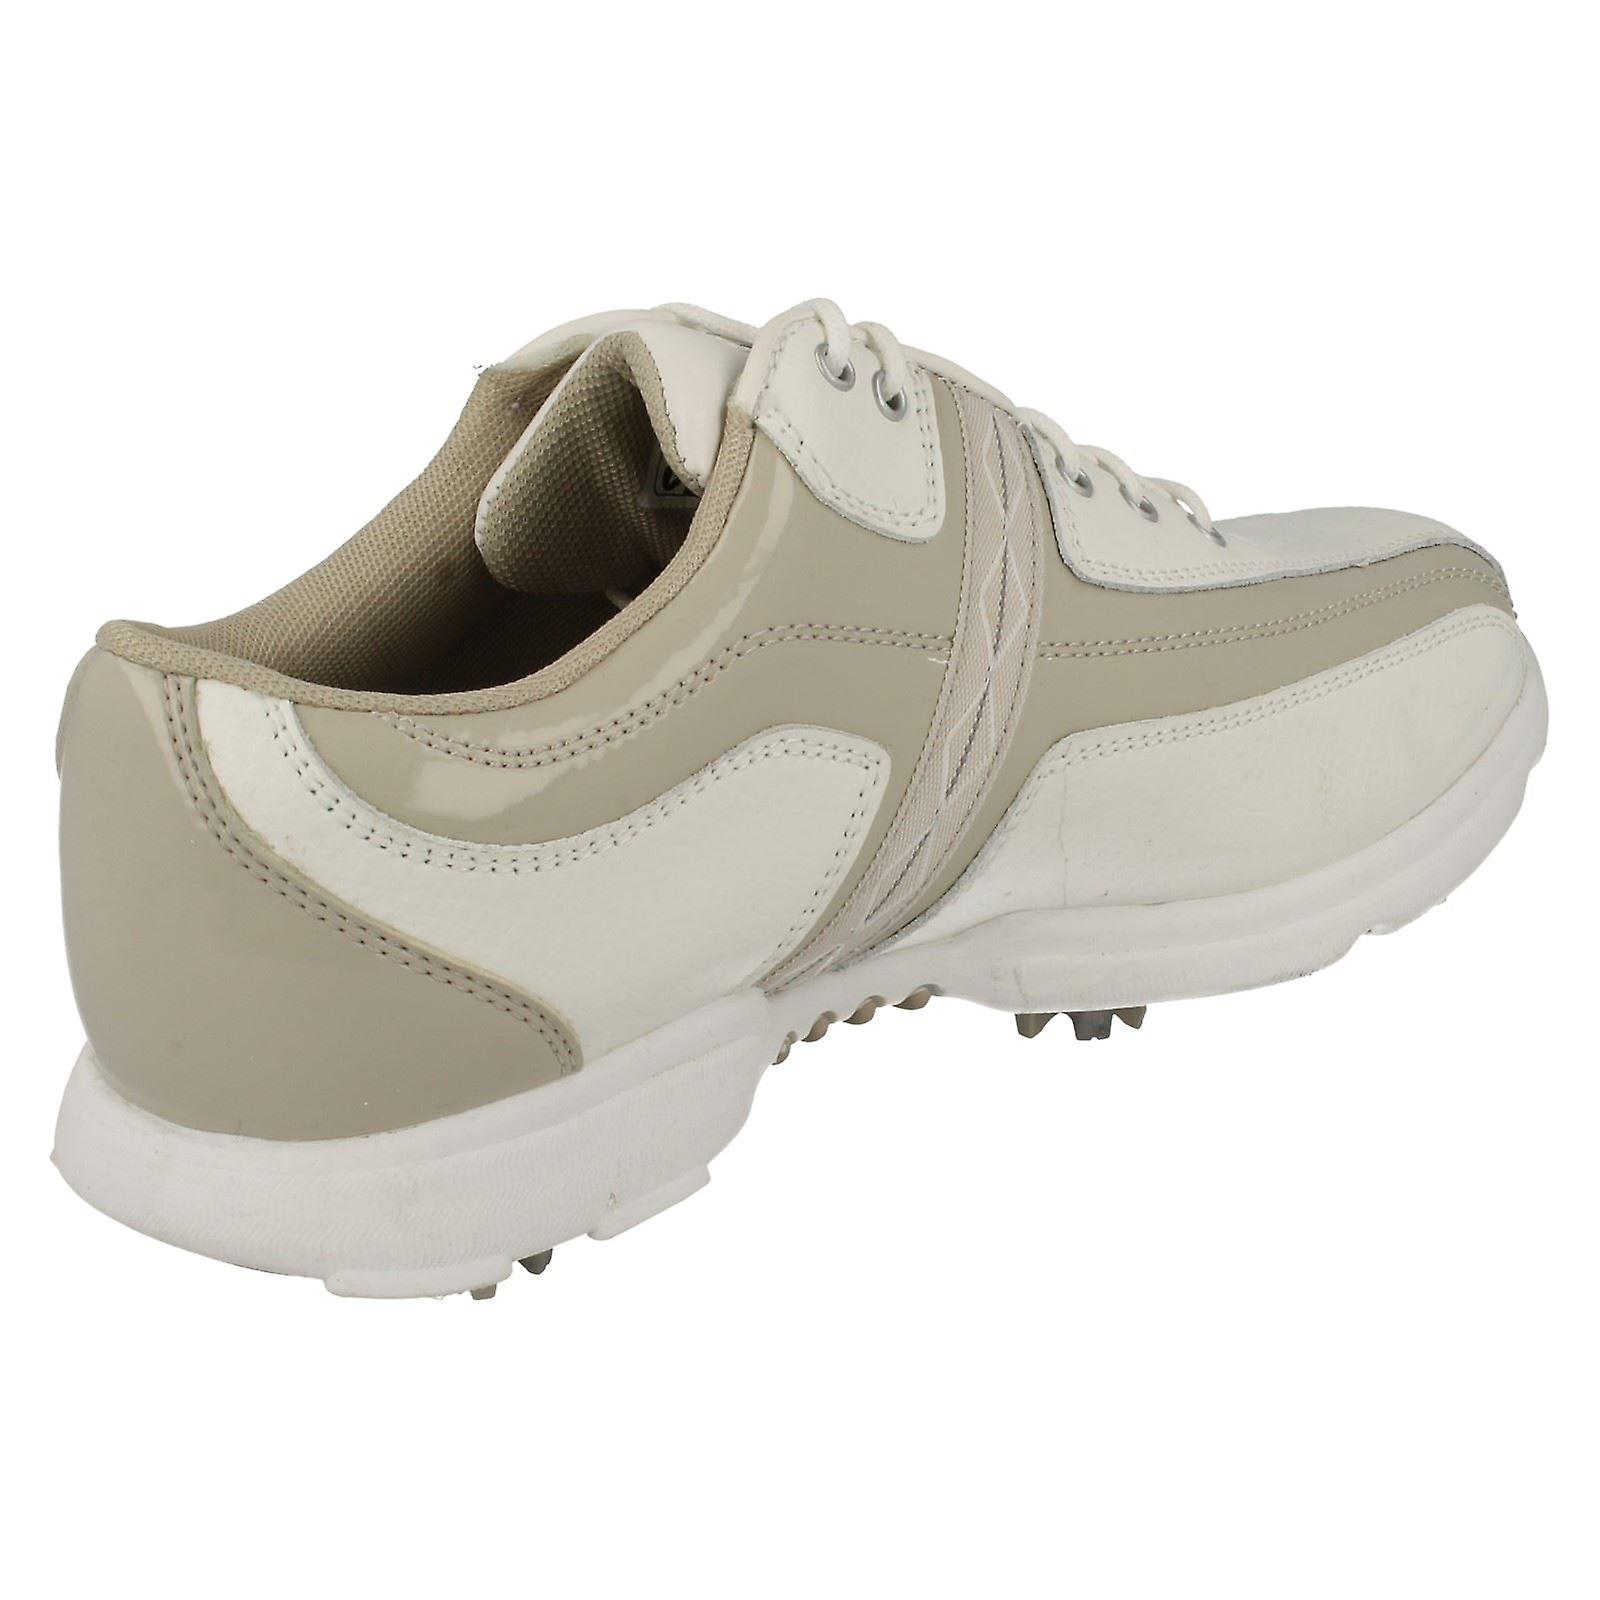 Ladies Hi-Tec Golf Shoes Covent Garden Garden Covent bd37ae